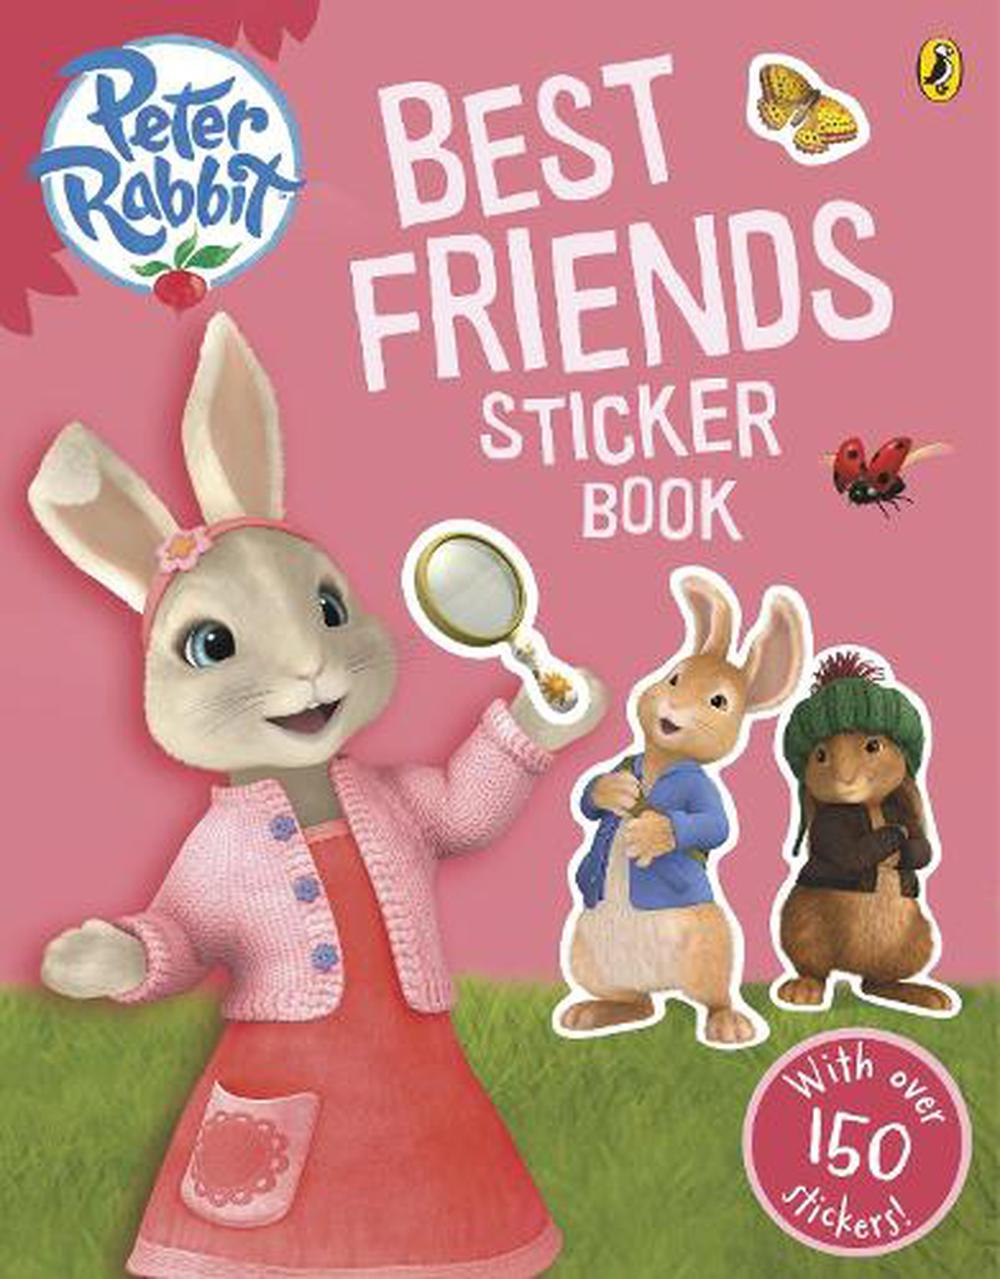 Peter Rabbit Animation: Best Friends Sticker Book